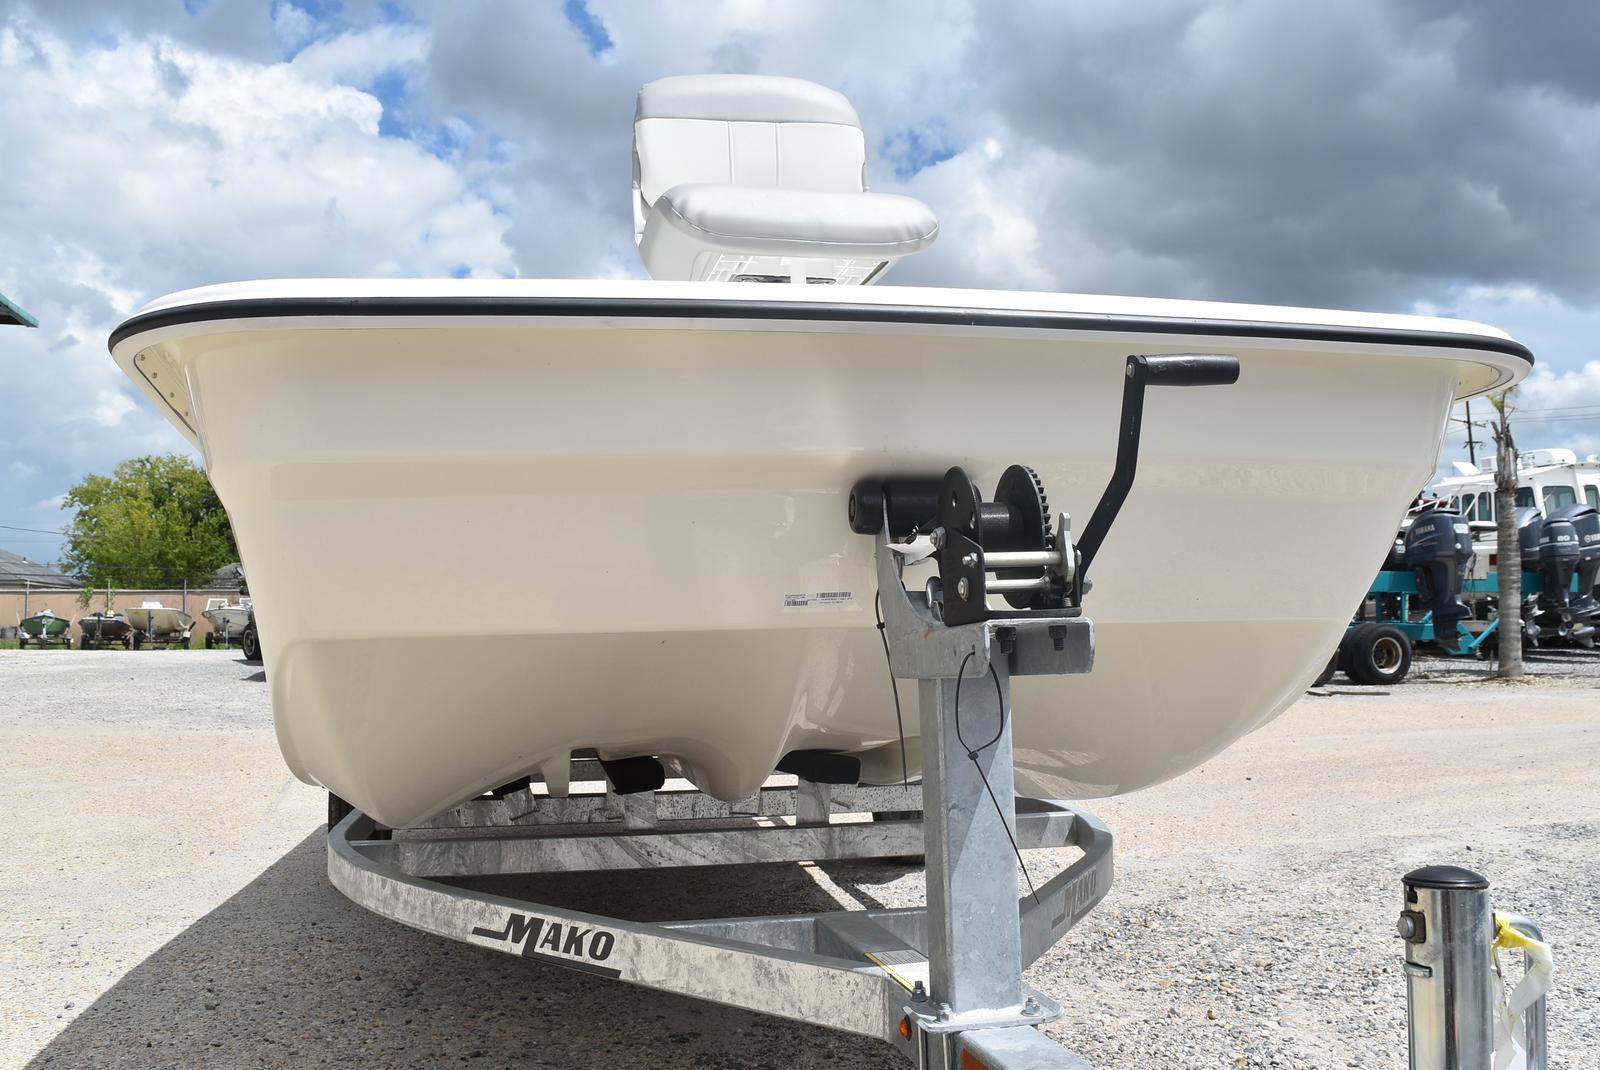 2020 Mako boat for sale, model of the boat is Pro Skiff 17, 75 ELPT & Image # 321 of 702